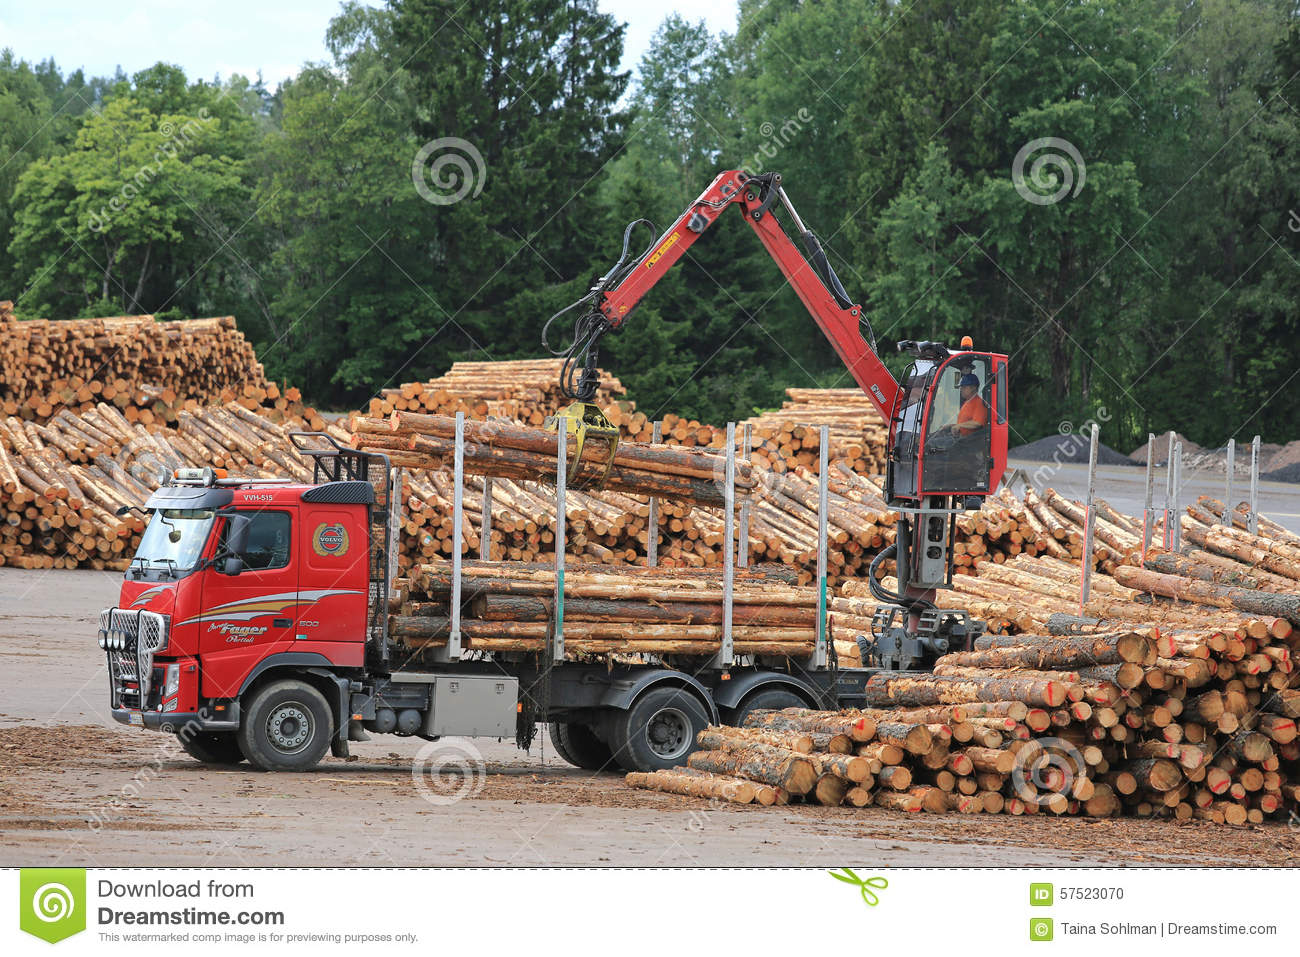 Volvo FH Truck Unloads Logs At Lumber Yard Editorial Image - Image: 57523070